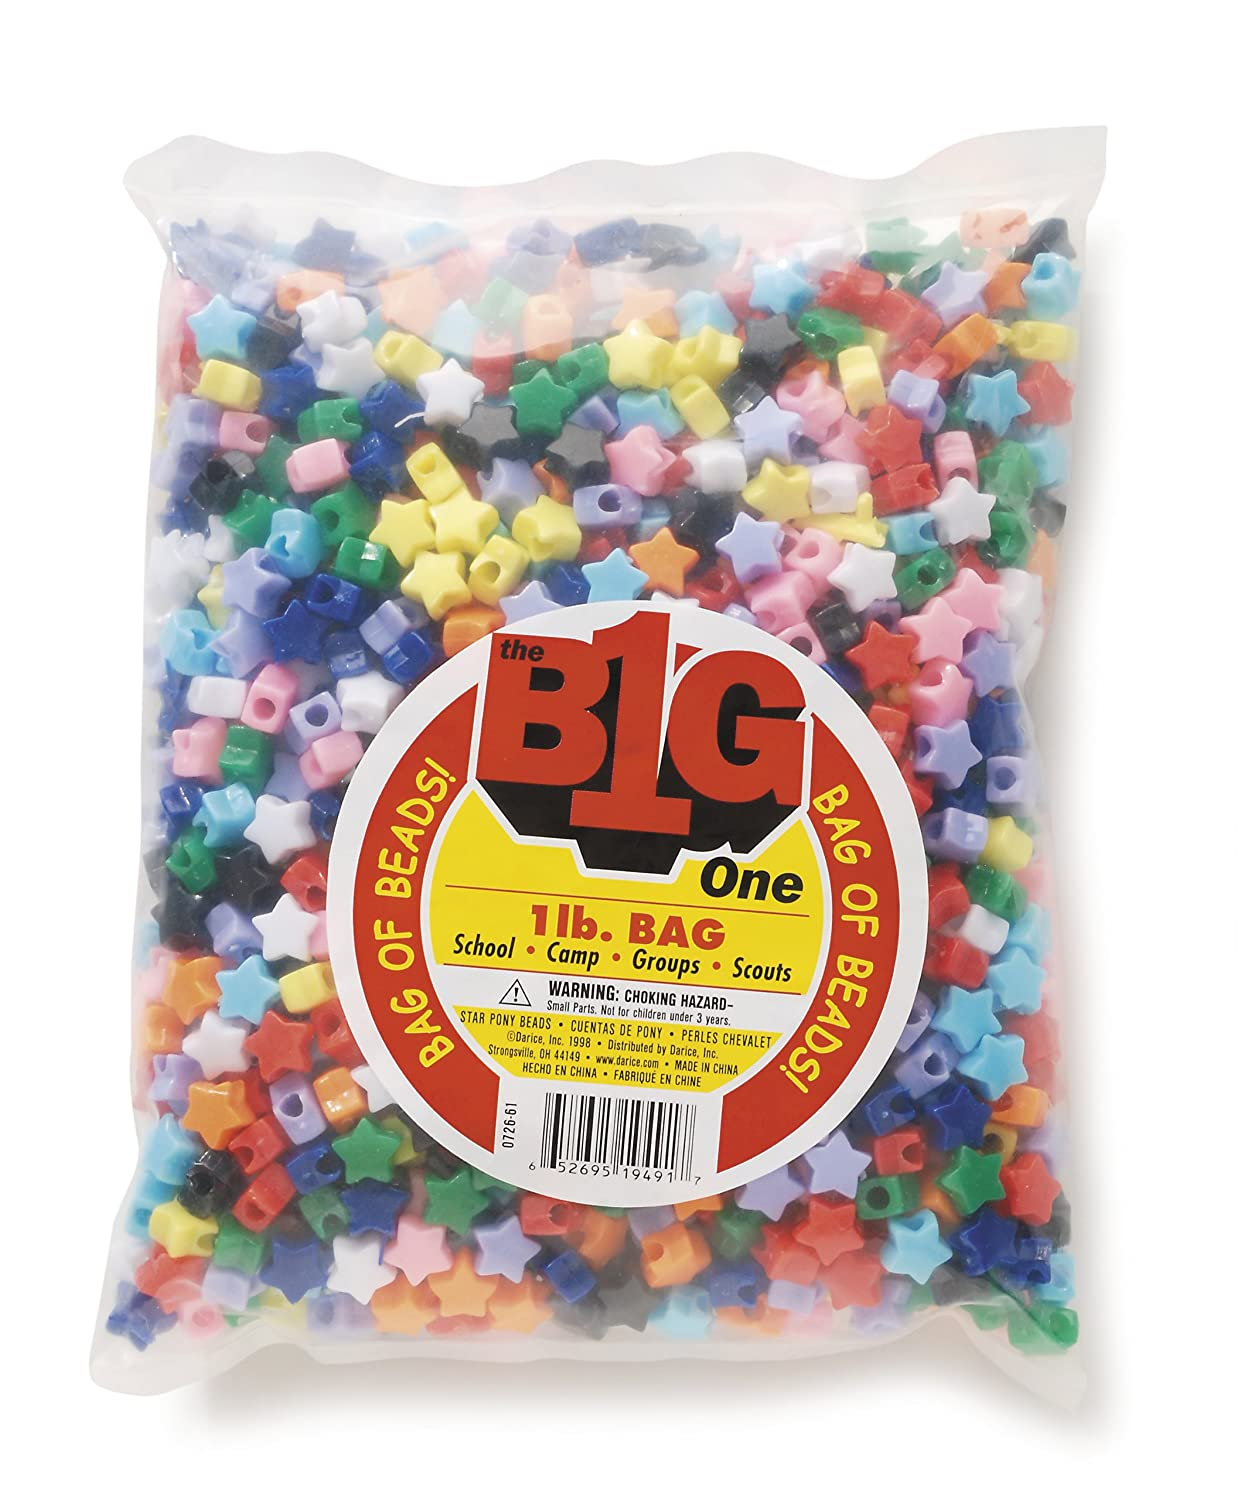 Hair Beading Great Craft Projects for All Ages Round Plastic Bead With Center Hole Key Chains 9mm Diameter Darice Assorted Glow in the Dark Multi-Color Pony Beads Bead Jewelry 1 lb Ornaments Bag